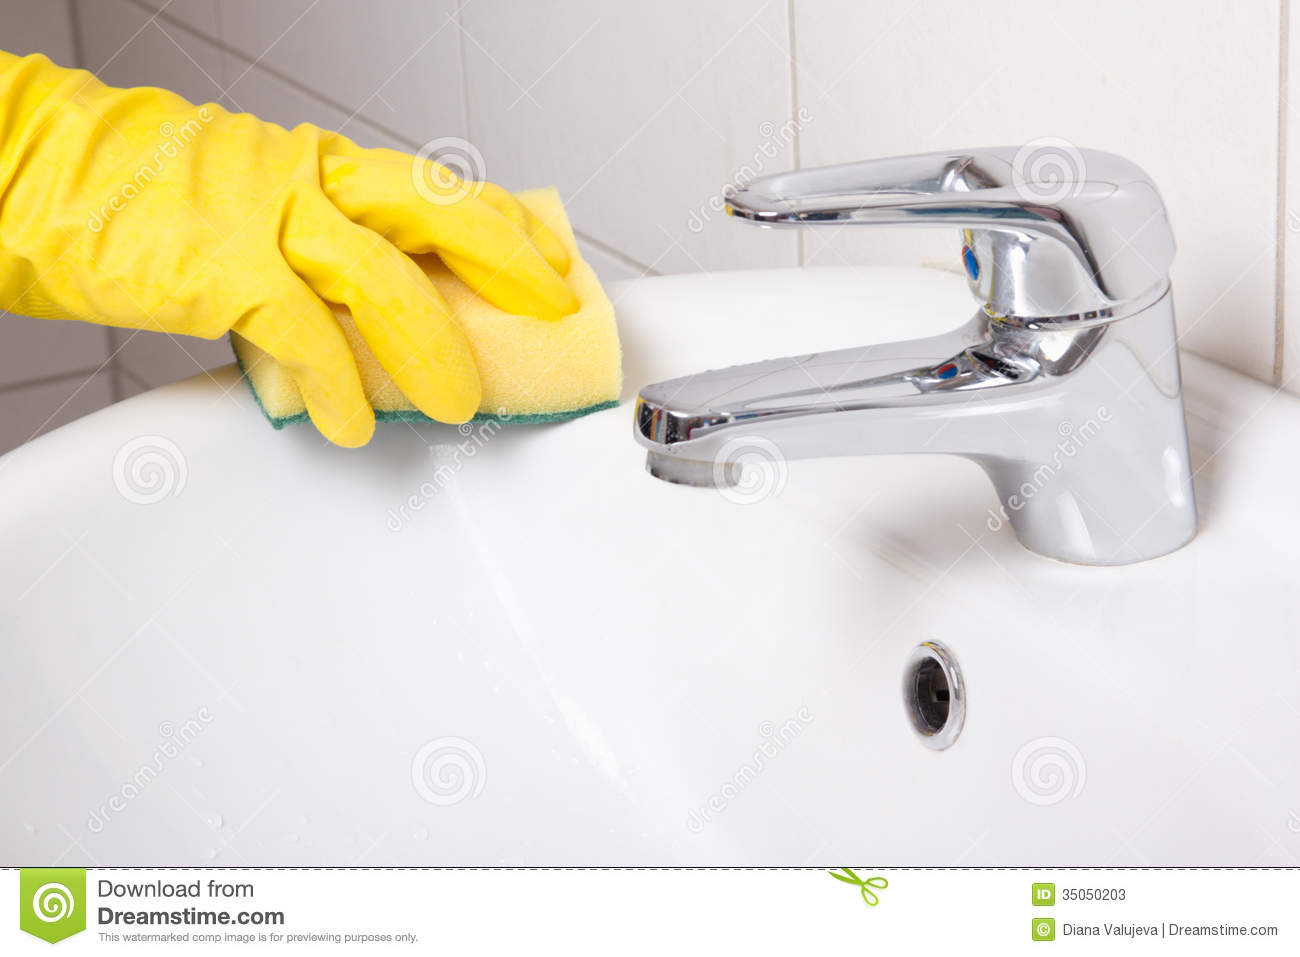 remove bathroom sink in yellow glove with sponge cleaning sink stock 14159